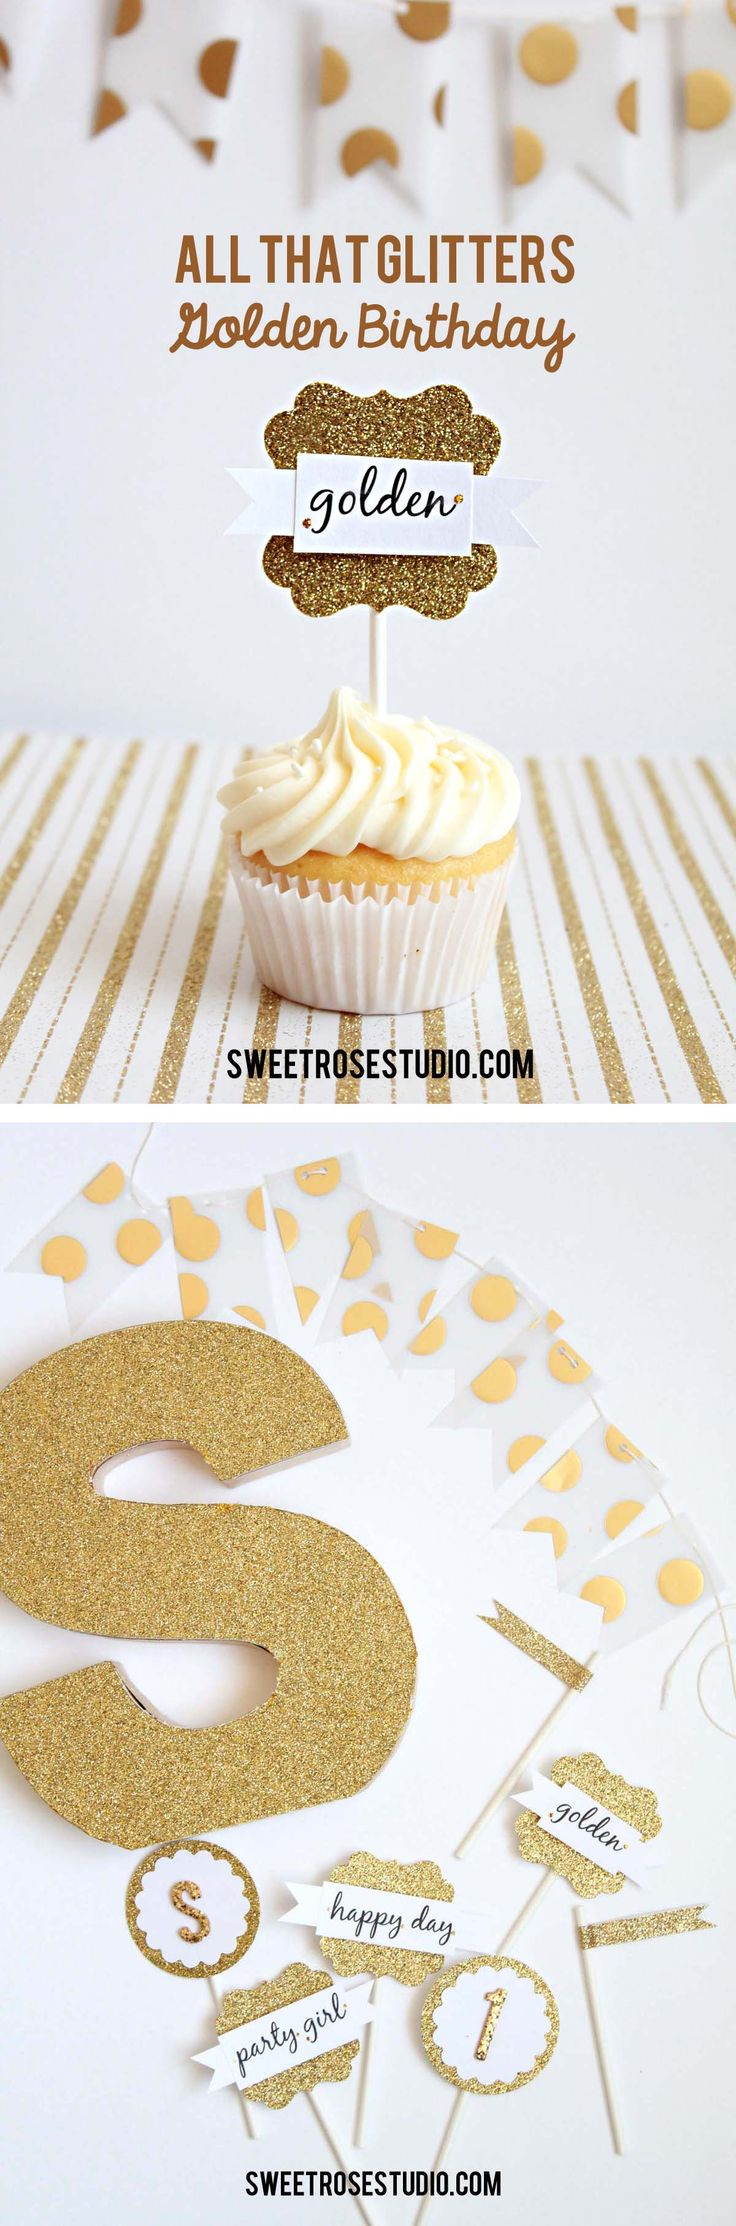 All That Glitters: Golden Birthday Party at Sweet Rose Studio #crafts #DIY #glitter #party @Janet Russell-Snider Crafts